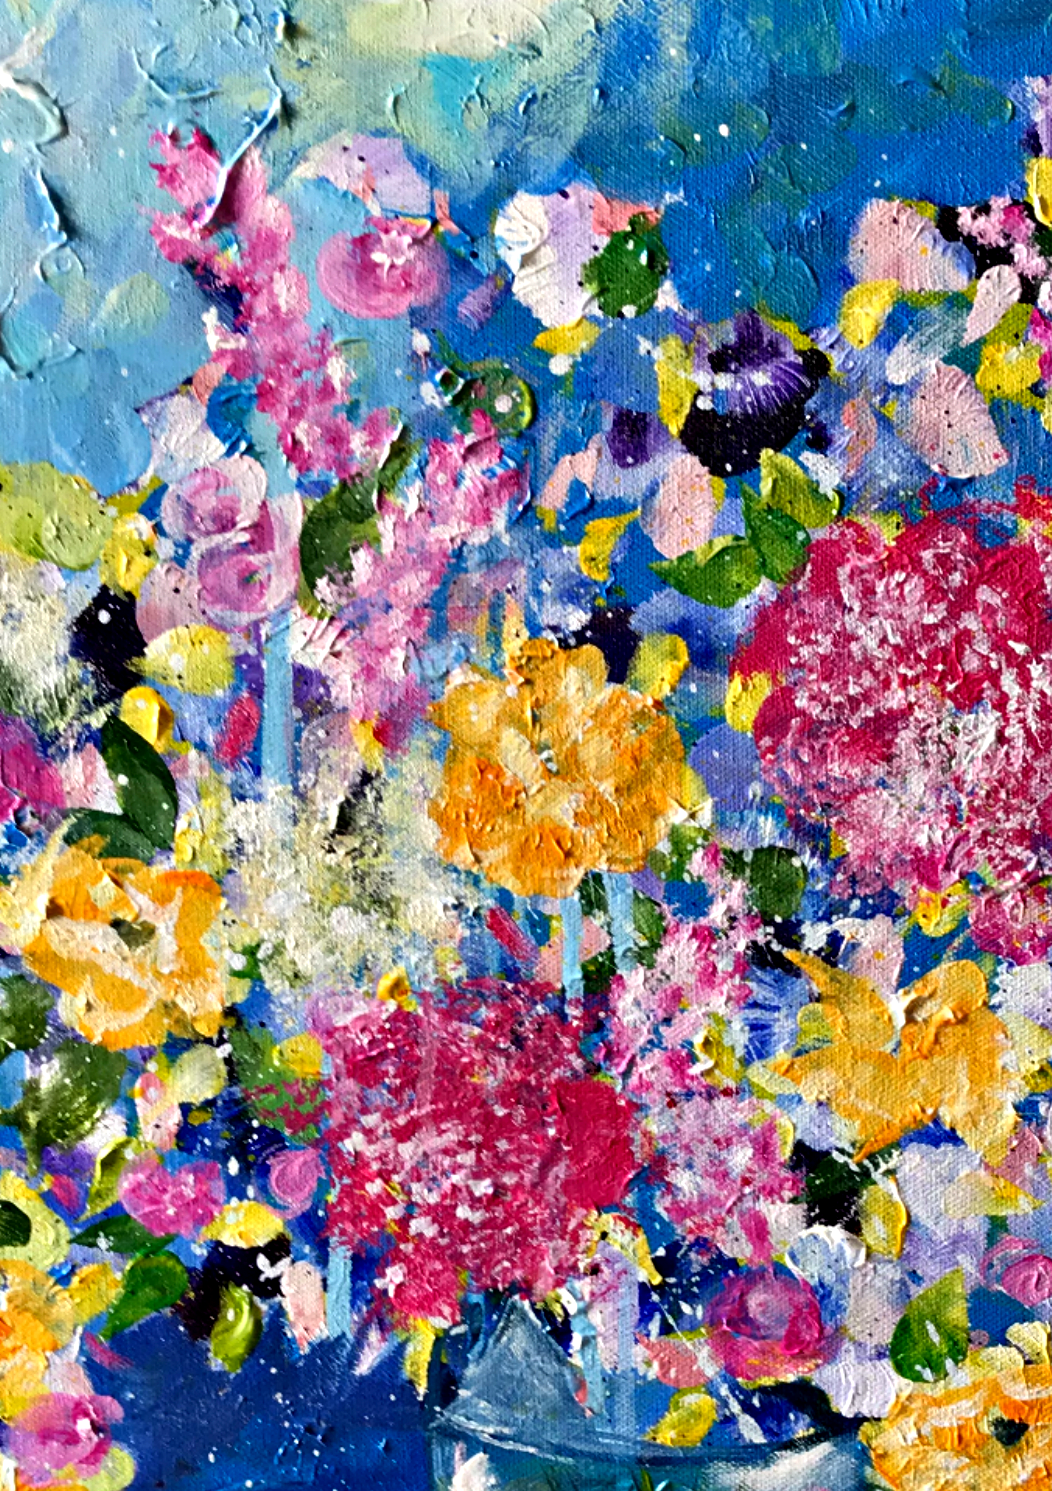 Flowers | Bright colored flowers | abstract flowers in vase | Dark Pink | Yellow Flowers | Commission art | www.sandykayemoss.com